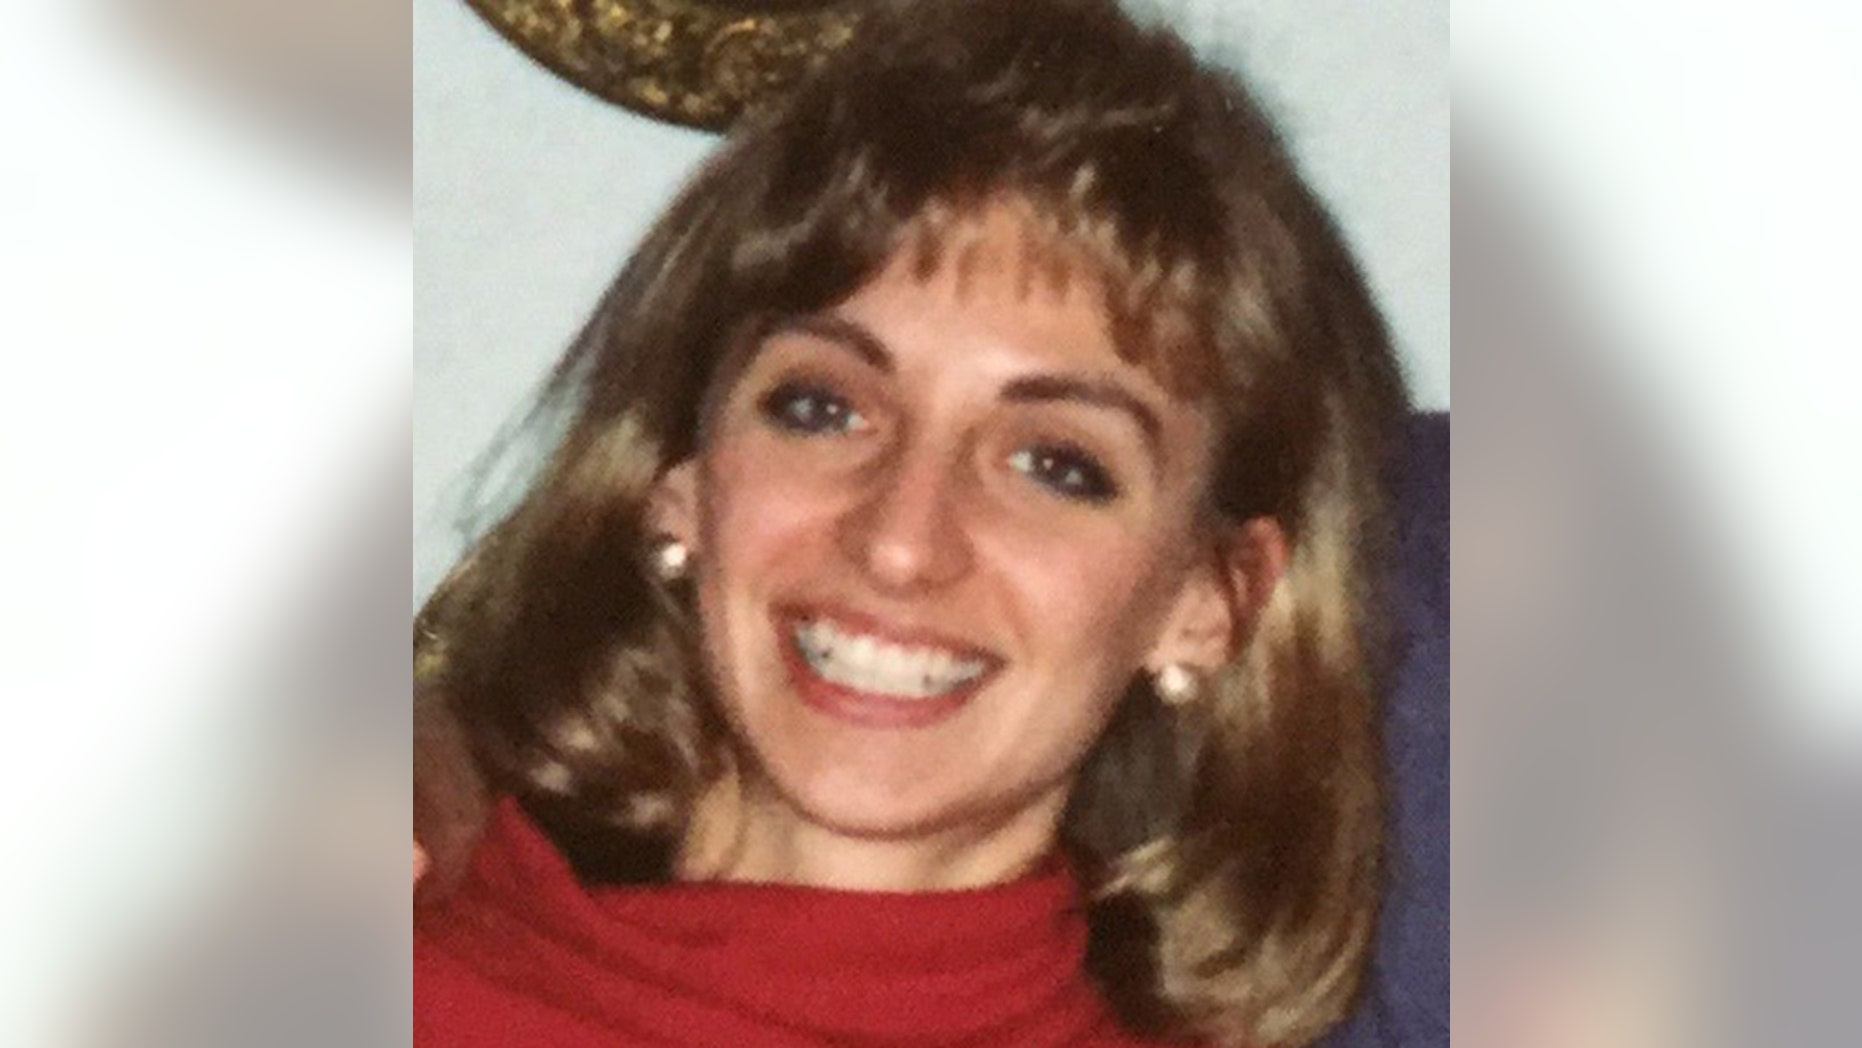 Suspected killer of Christy Mirack charged 25 years later in